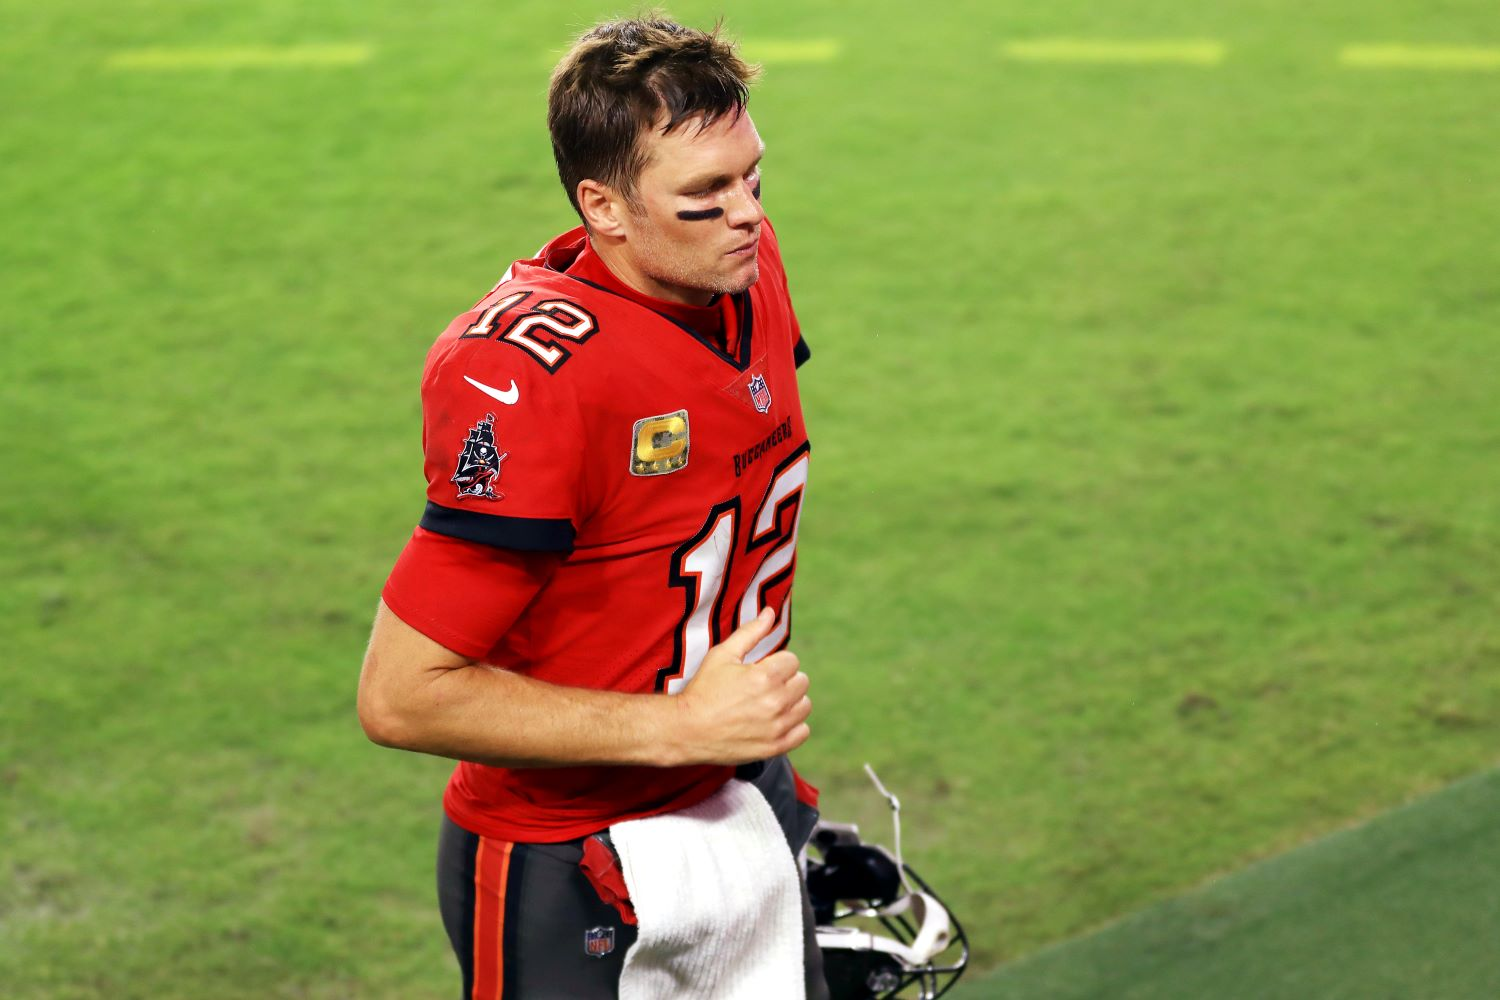 Tom Brady suffered the worst loss of his career on Sunday night against the Saints. Now, the Buccaneers have a much more difficult path to winning the NFC.